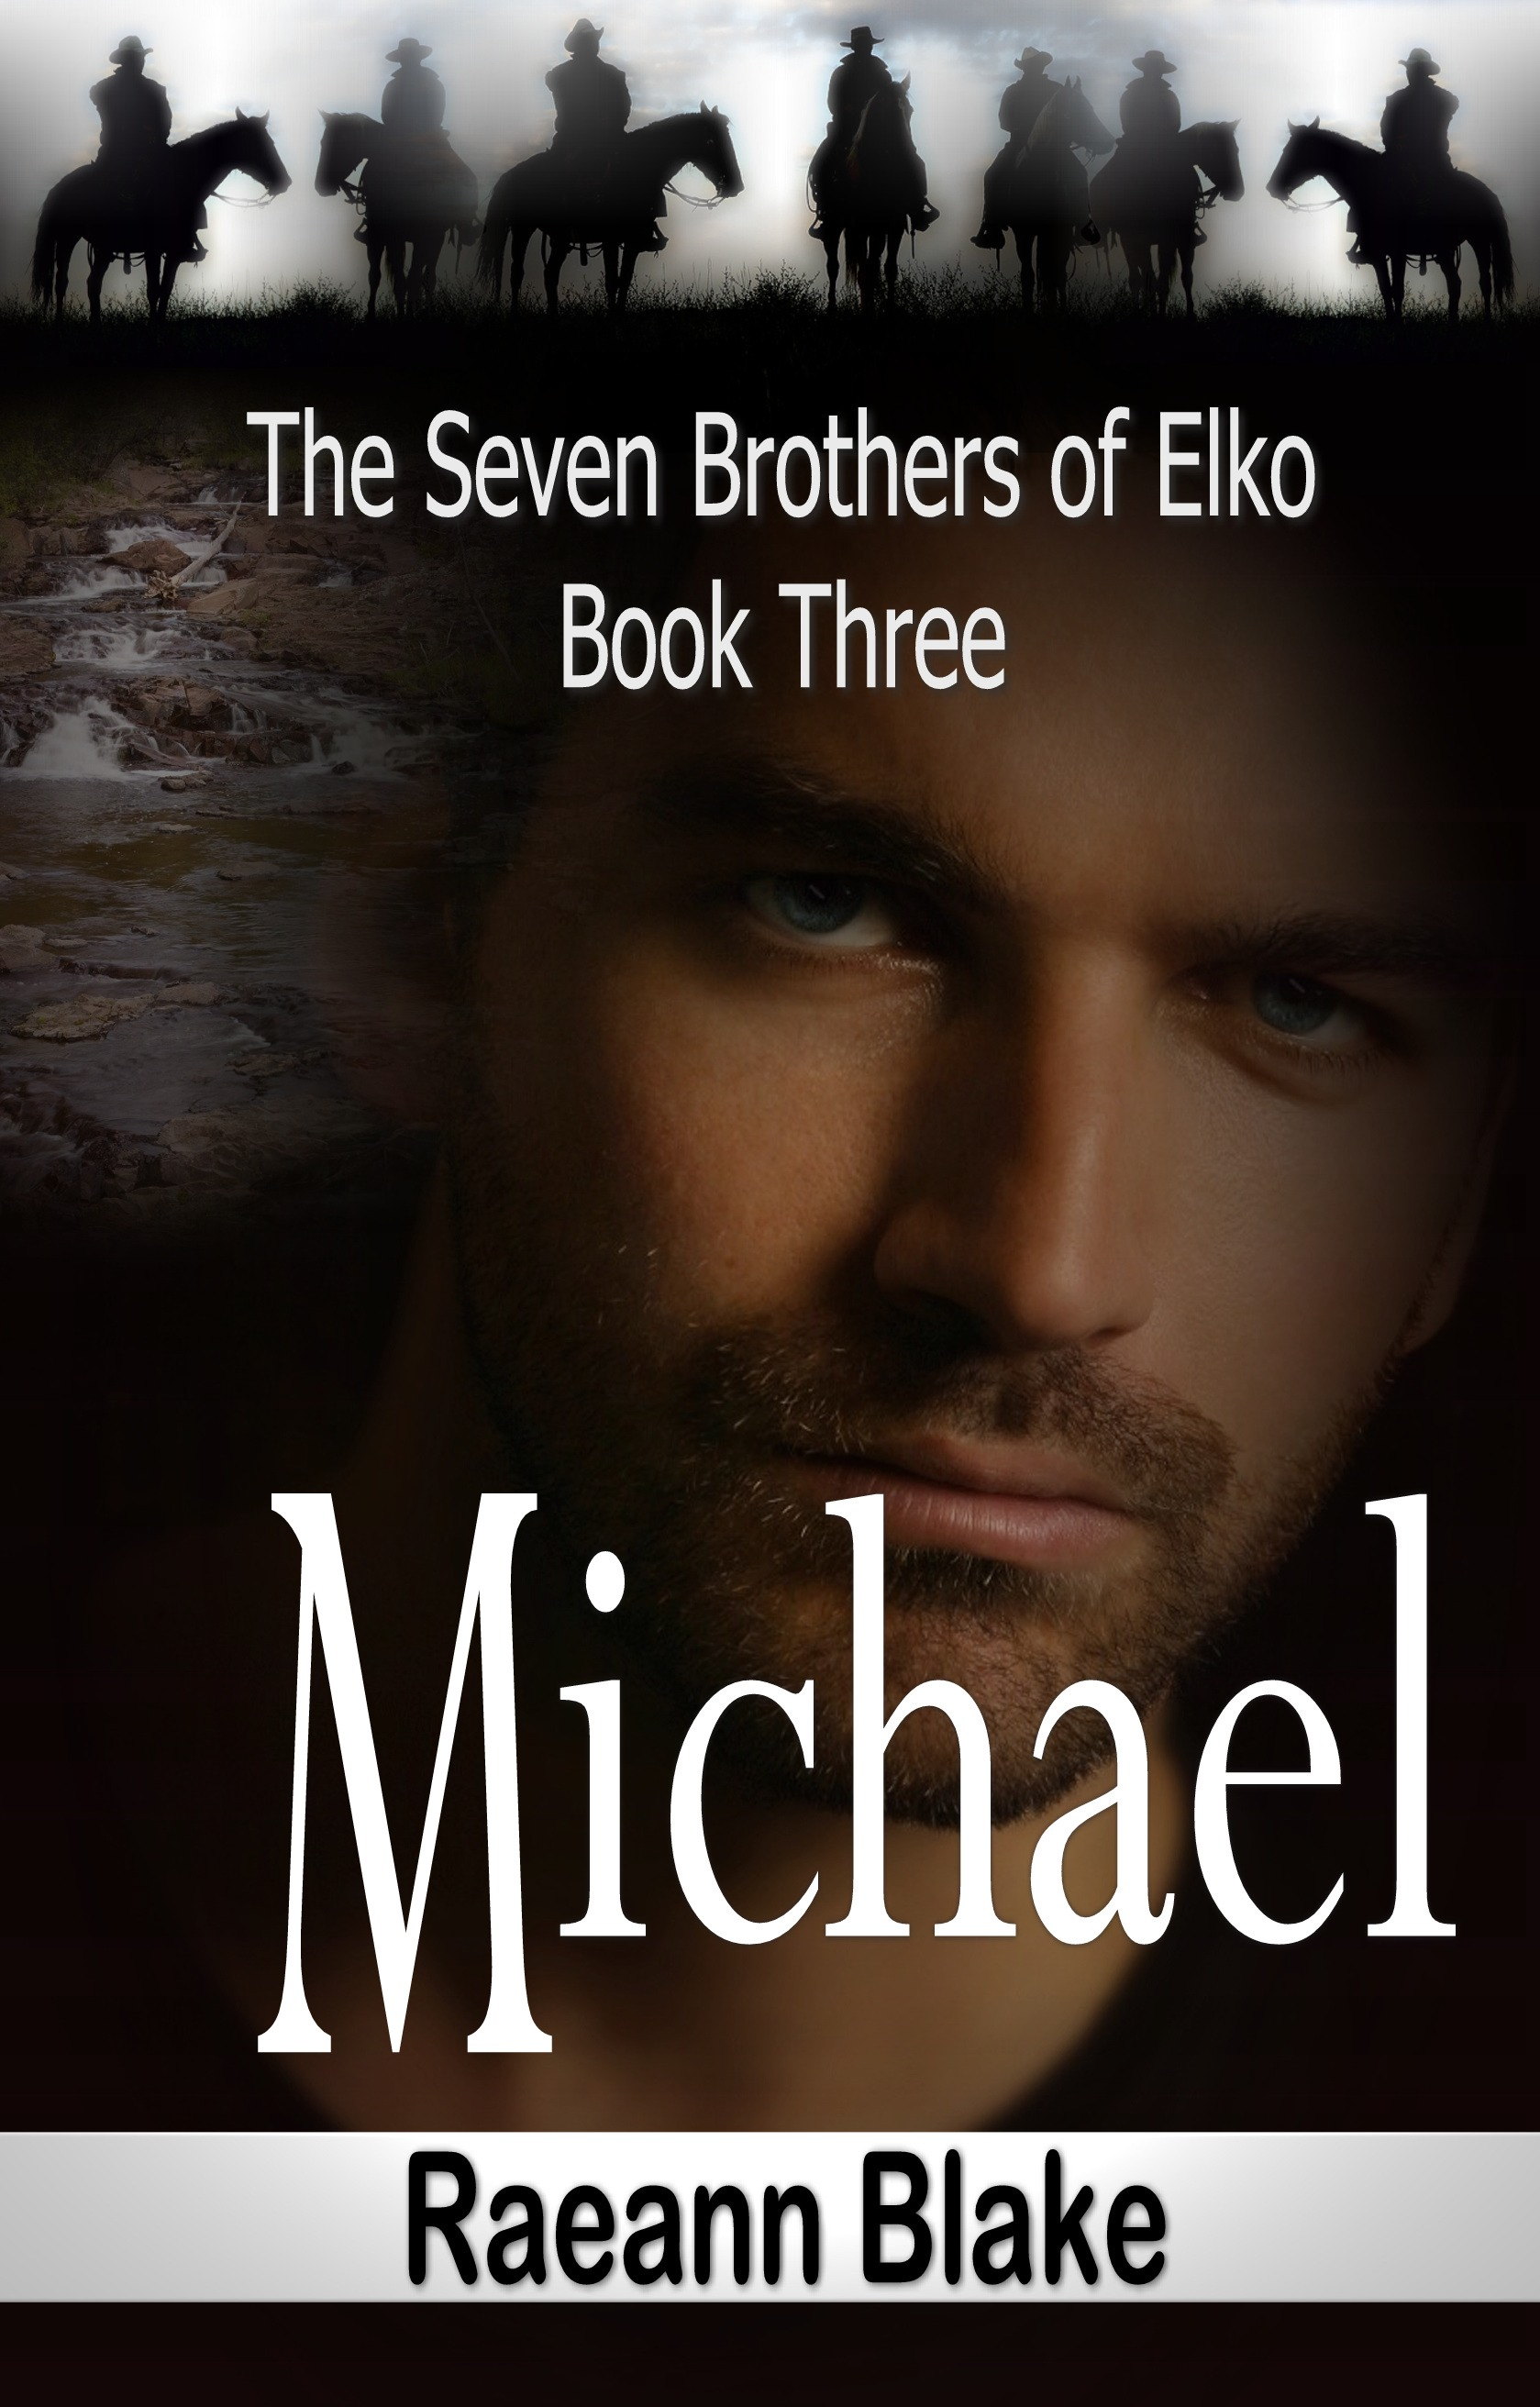 The Seven Brothers of Elko - Michael